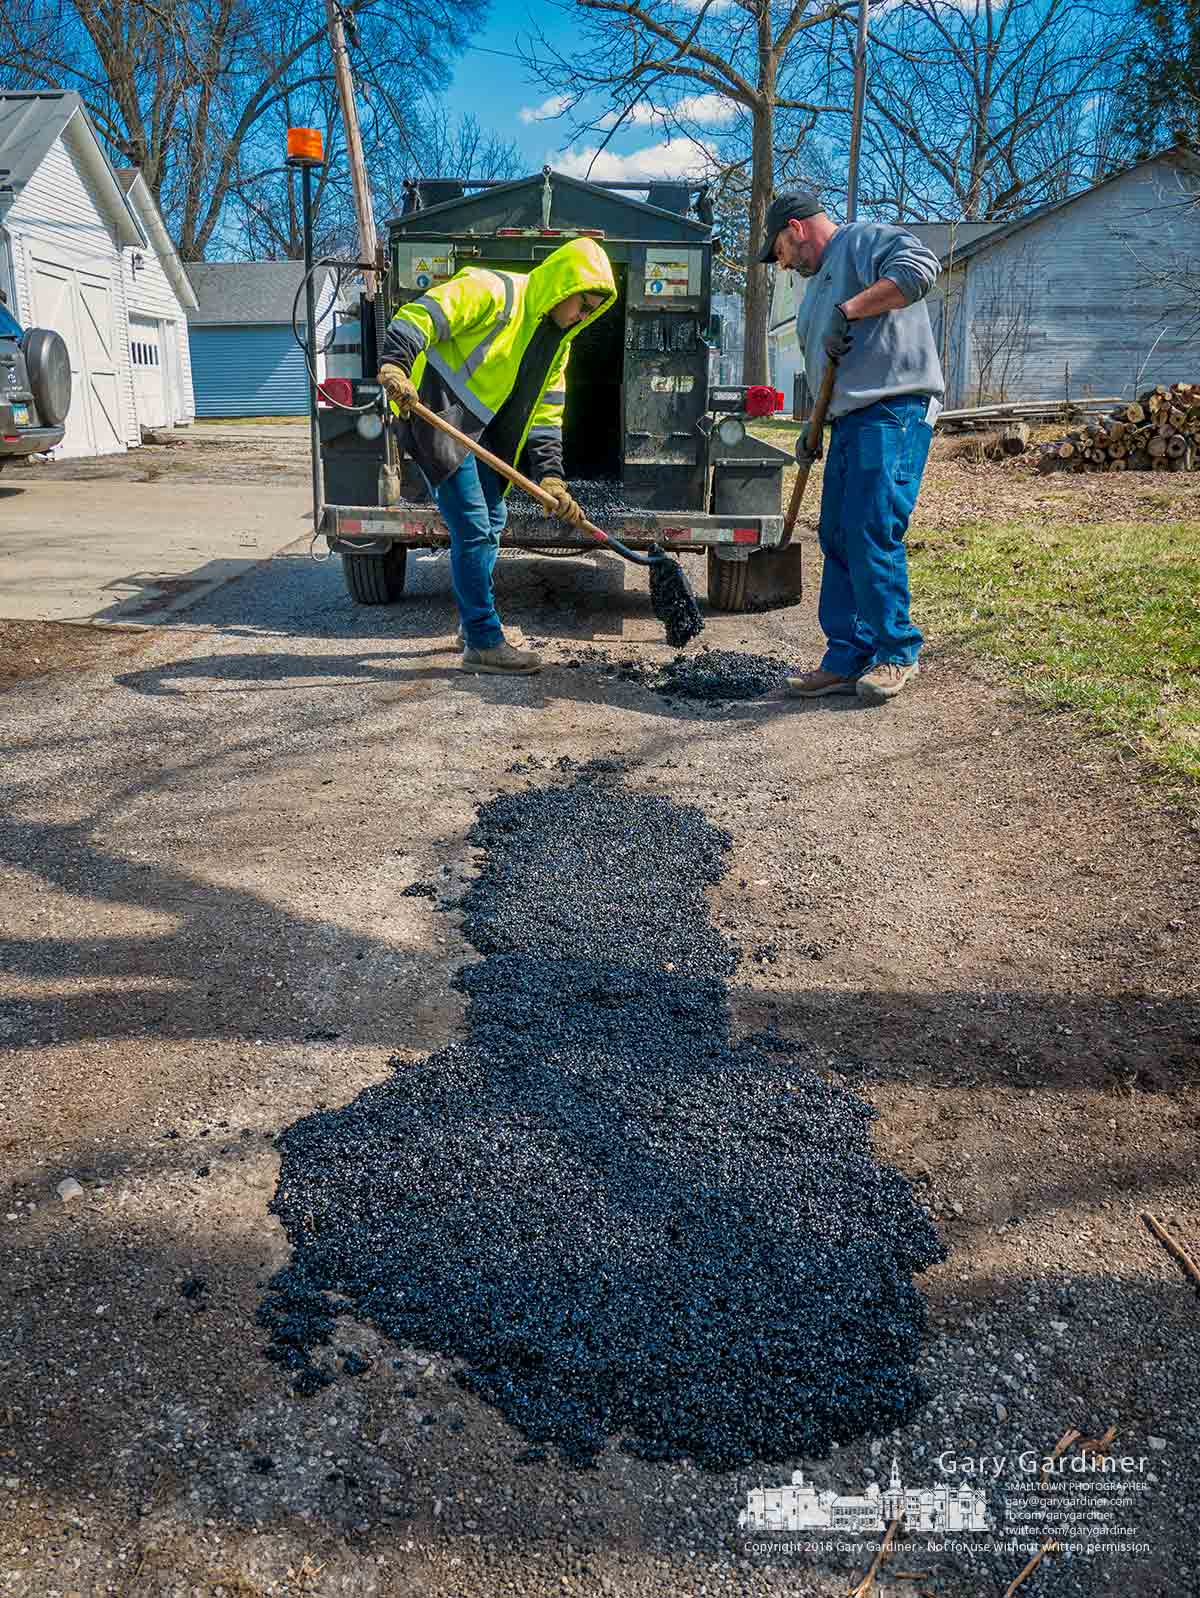 City workers shovel hot mix asphalt into potholes on North Alley off Vine Street. My Final Photo for March 15, 2018.